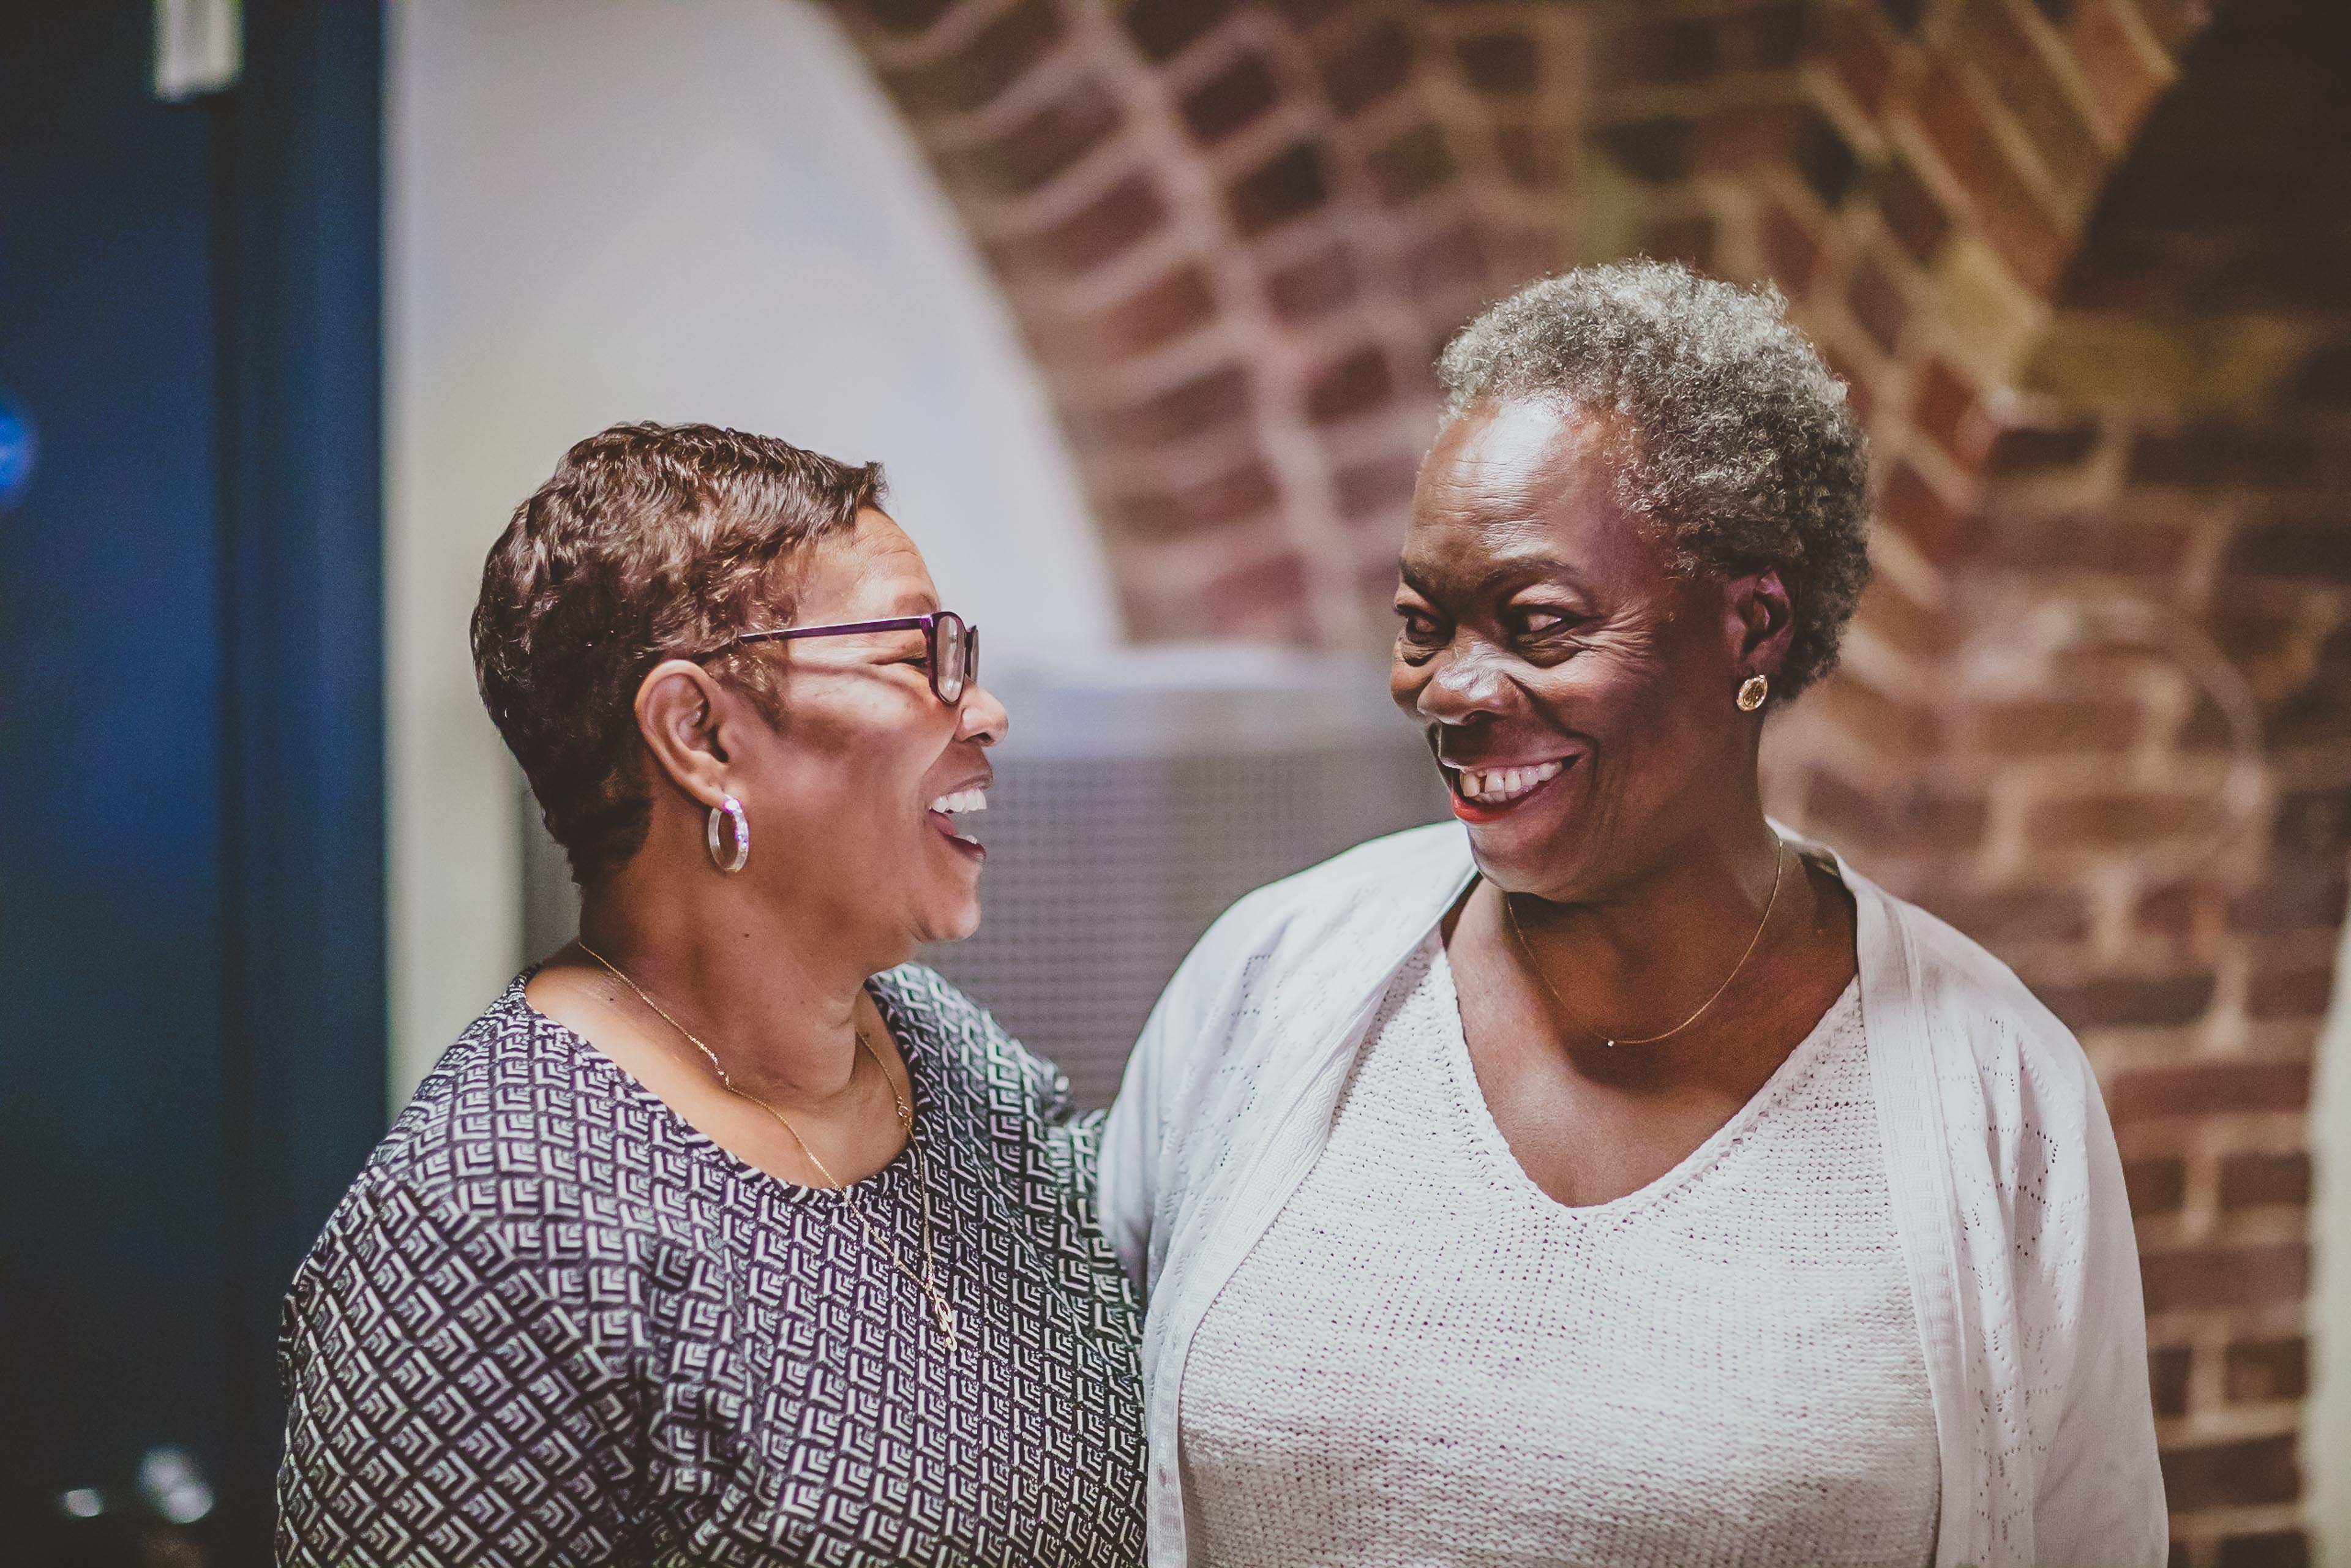 Two women look at each other, smiling